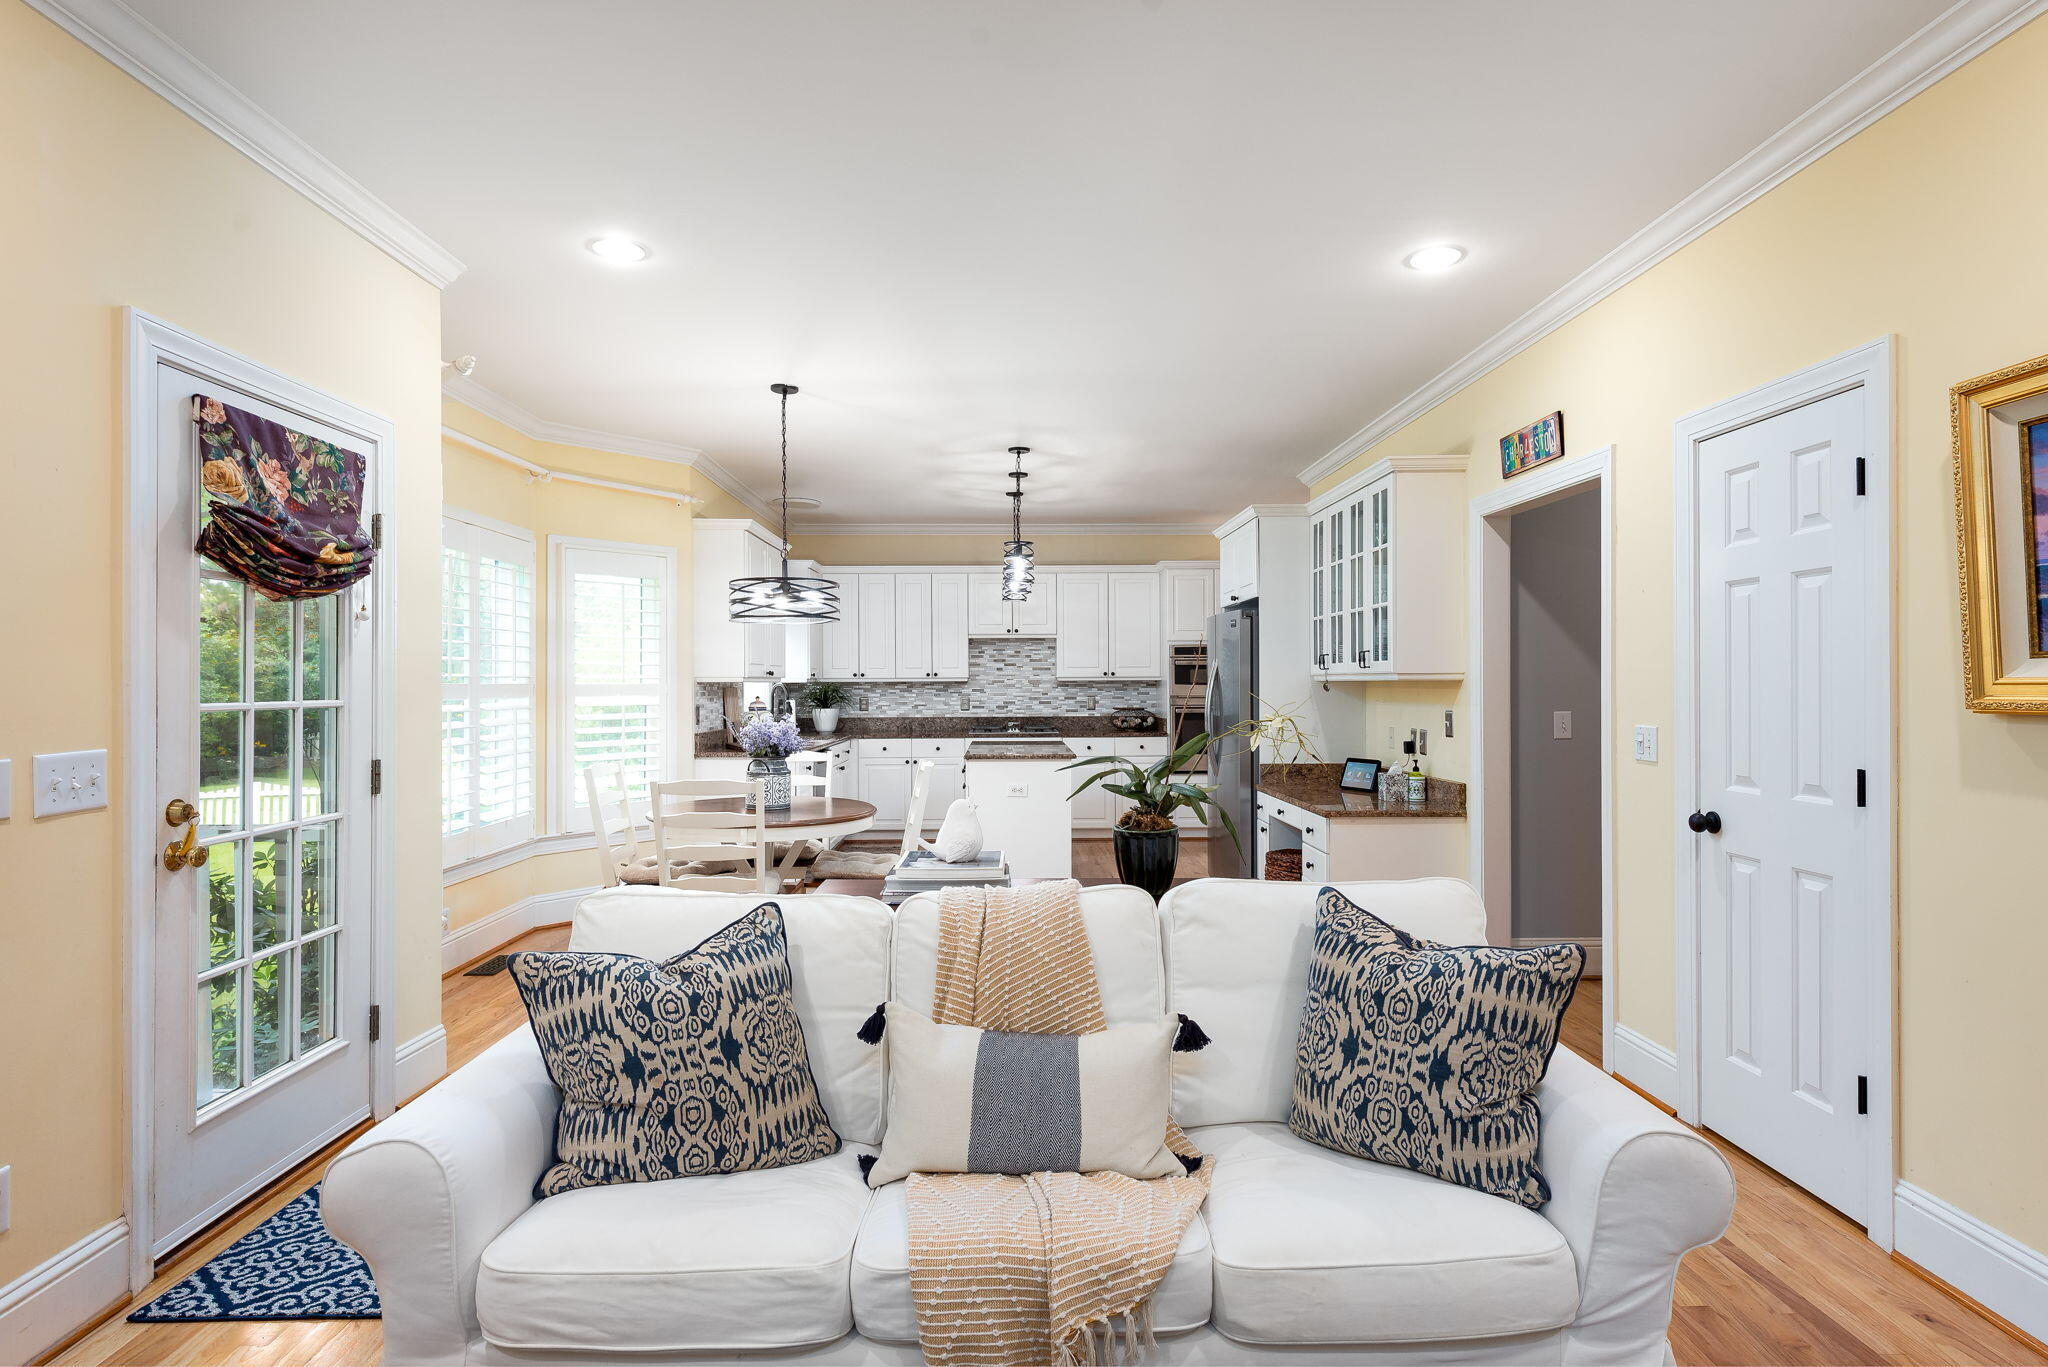 Rivertowne On The Wando Homes For Sale - 2301 Hartfords Bluff, Mount Pleasant, SC - 25